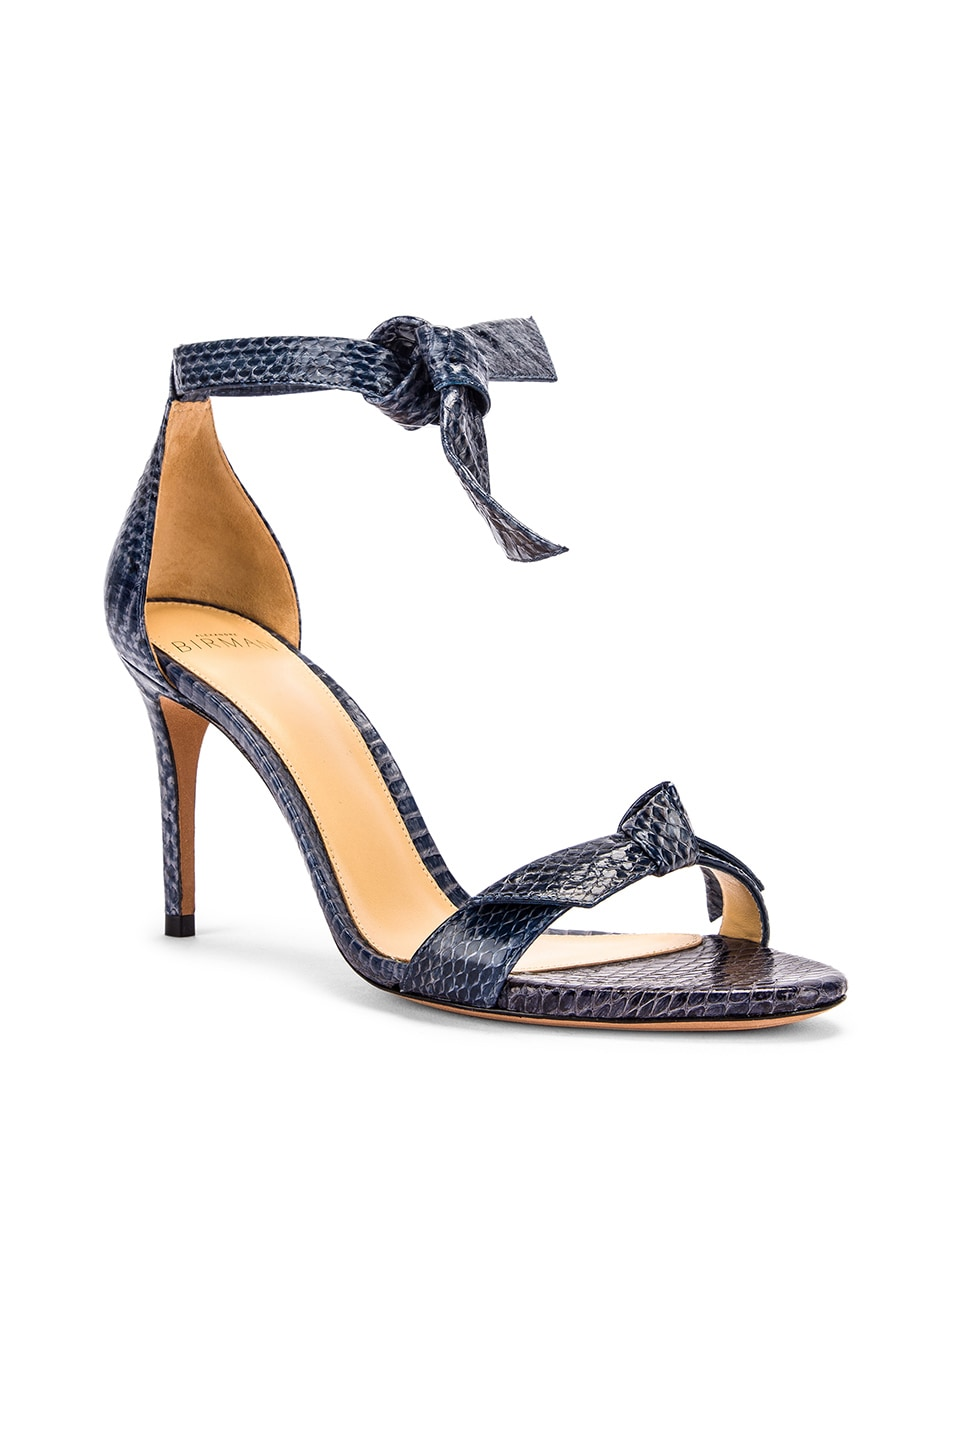 Image 2 of Alexandre Birman Clarita Ankle Strap Sandals in Marine